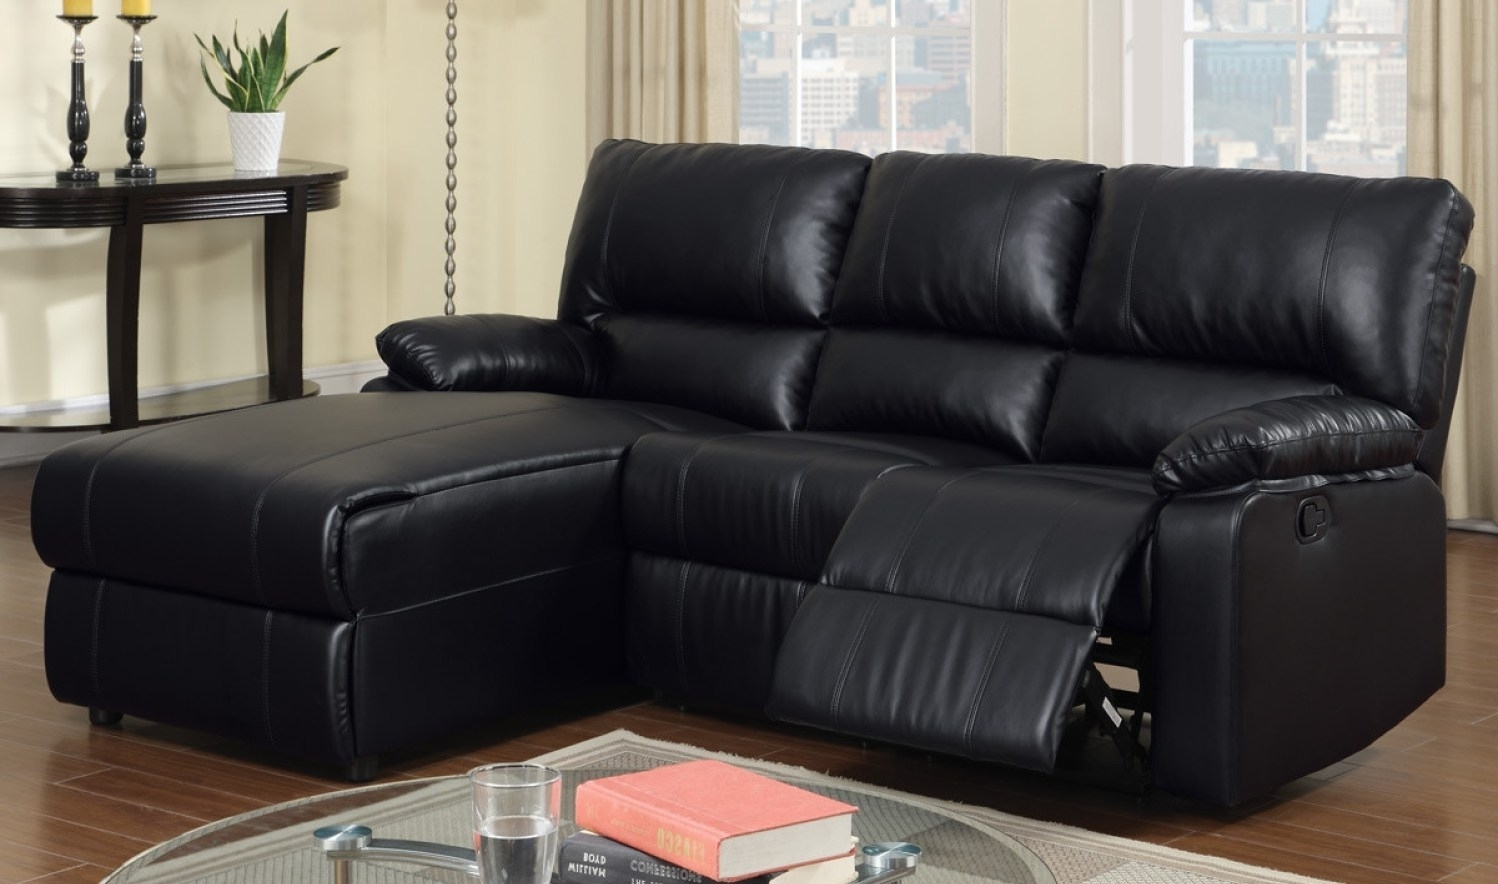 Gallery Austin Sectional Sofa – Mediasupload Throughout Sectional Sofas At Austin (View 5 of 15)